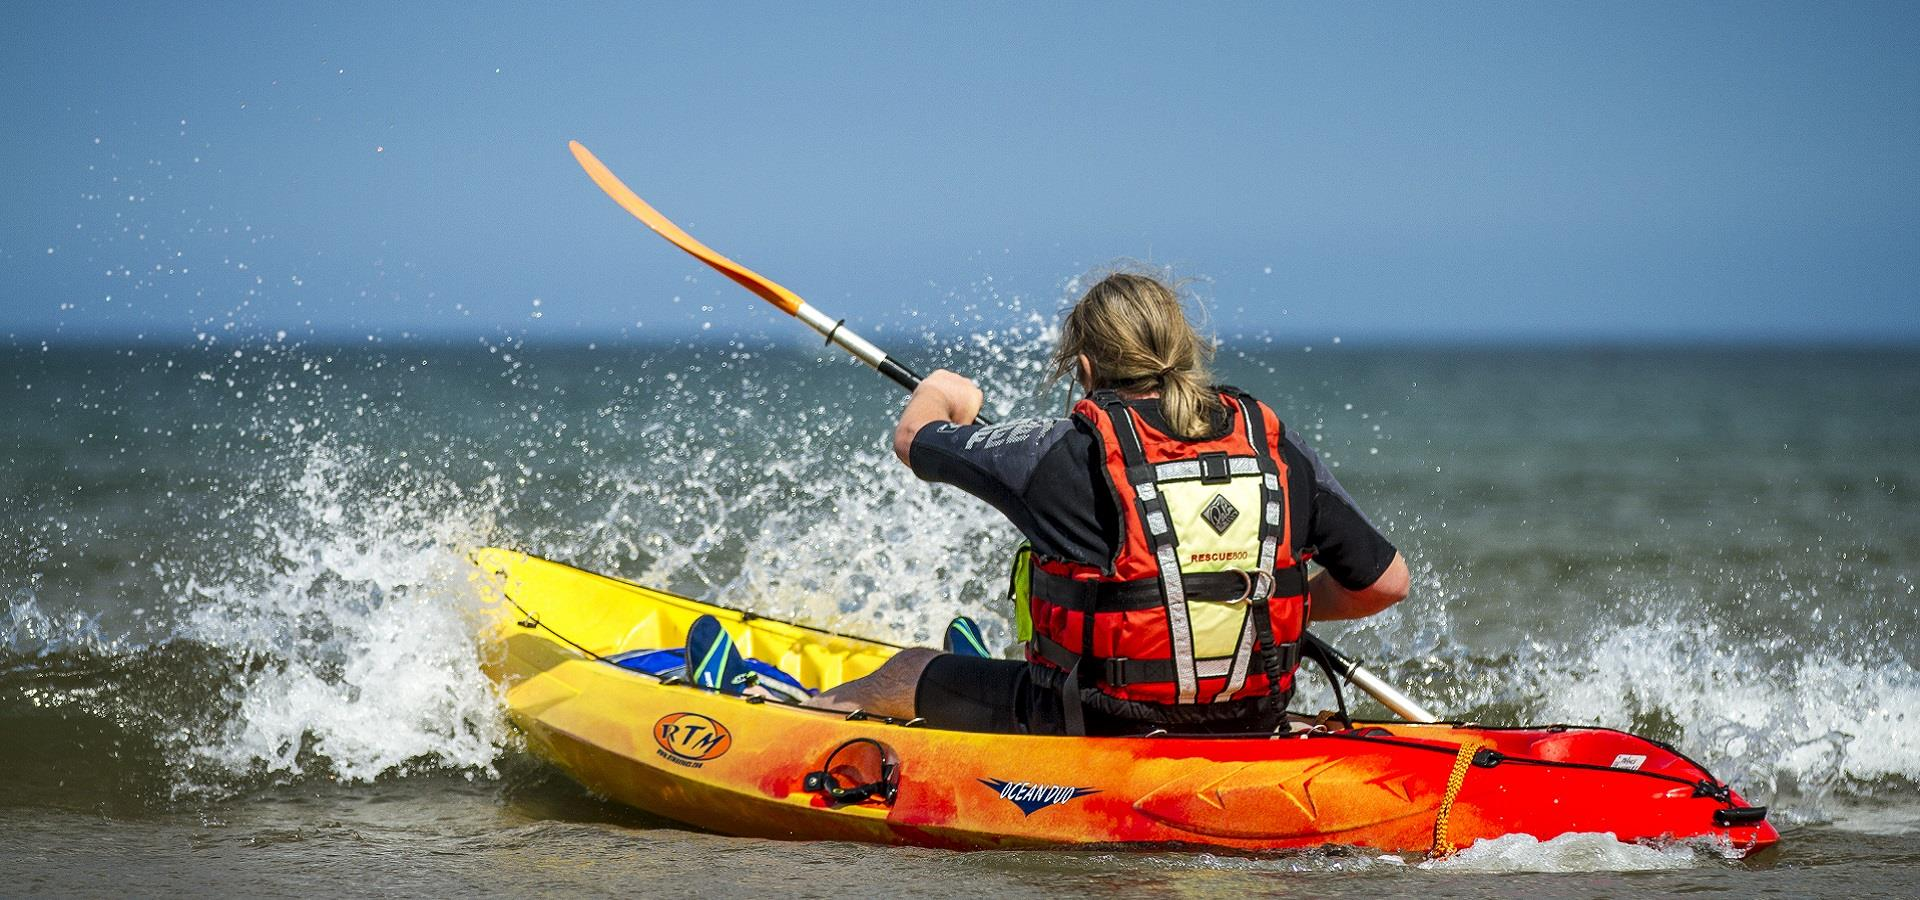 Kayaking on the Yorkshire Coast by Chris Lazenby